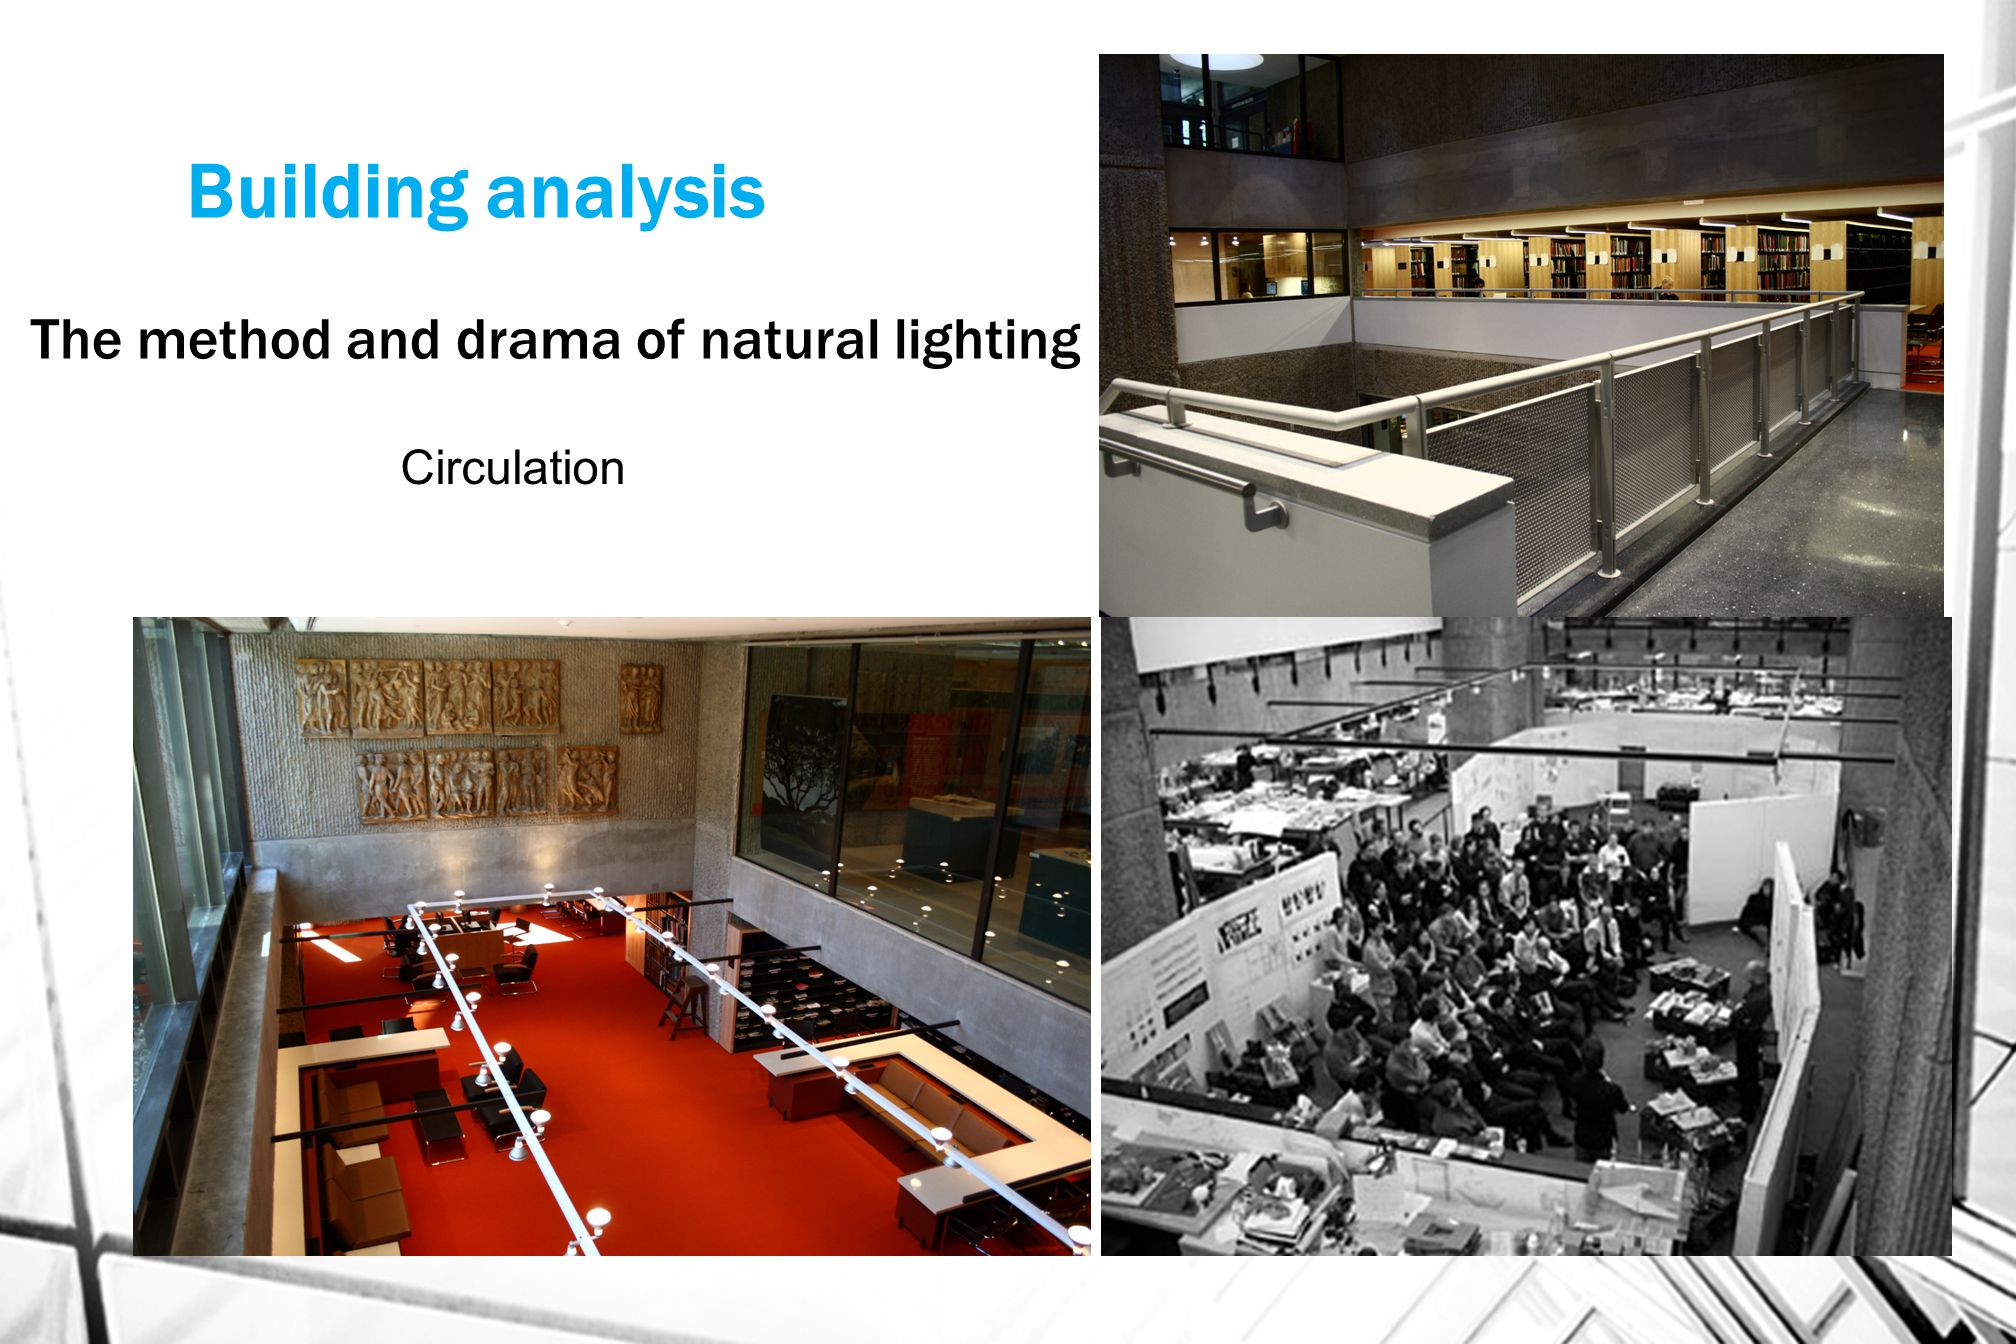 Building analysis The method and drama of natural lighting Circulation